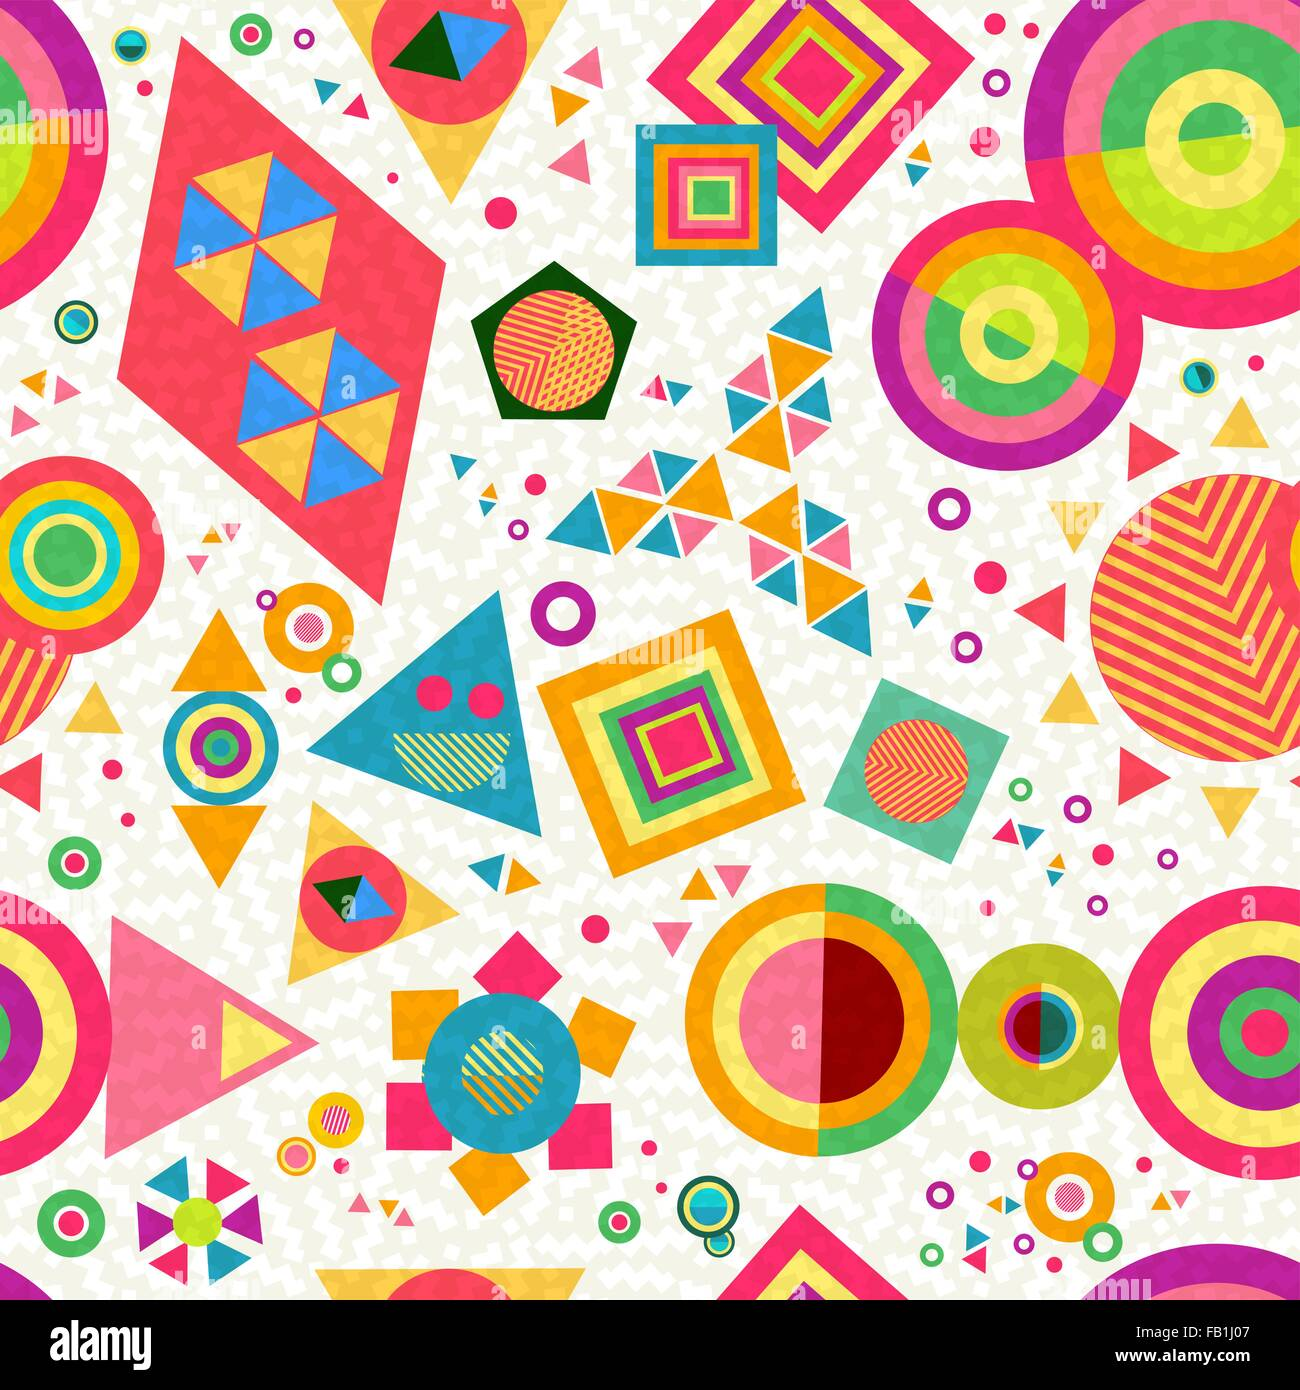 Seamless Pattern Background With Geometric Shapes And